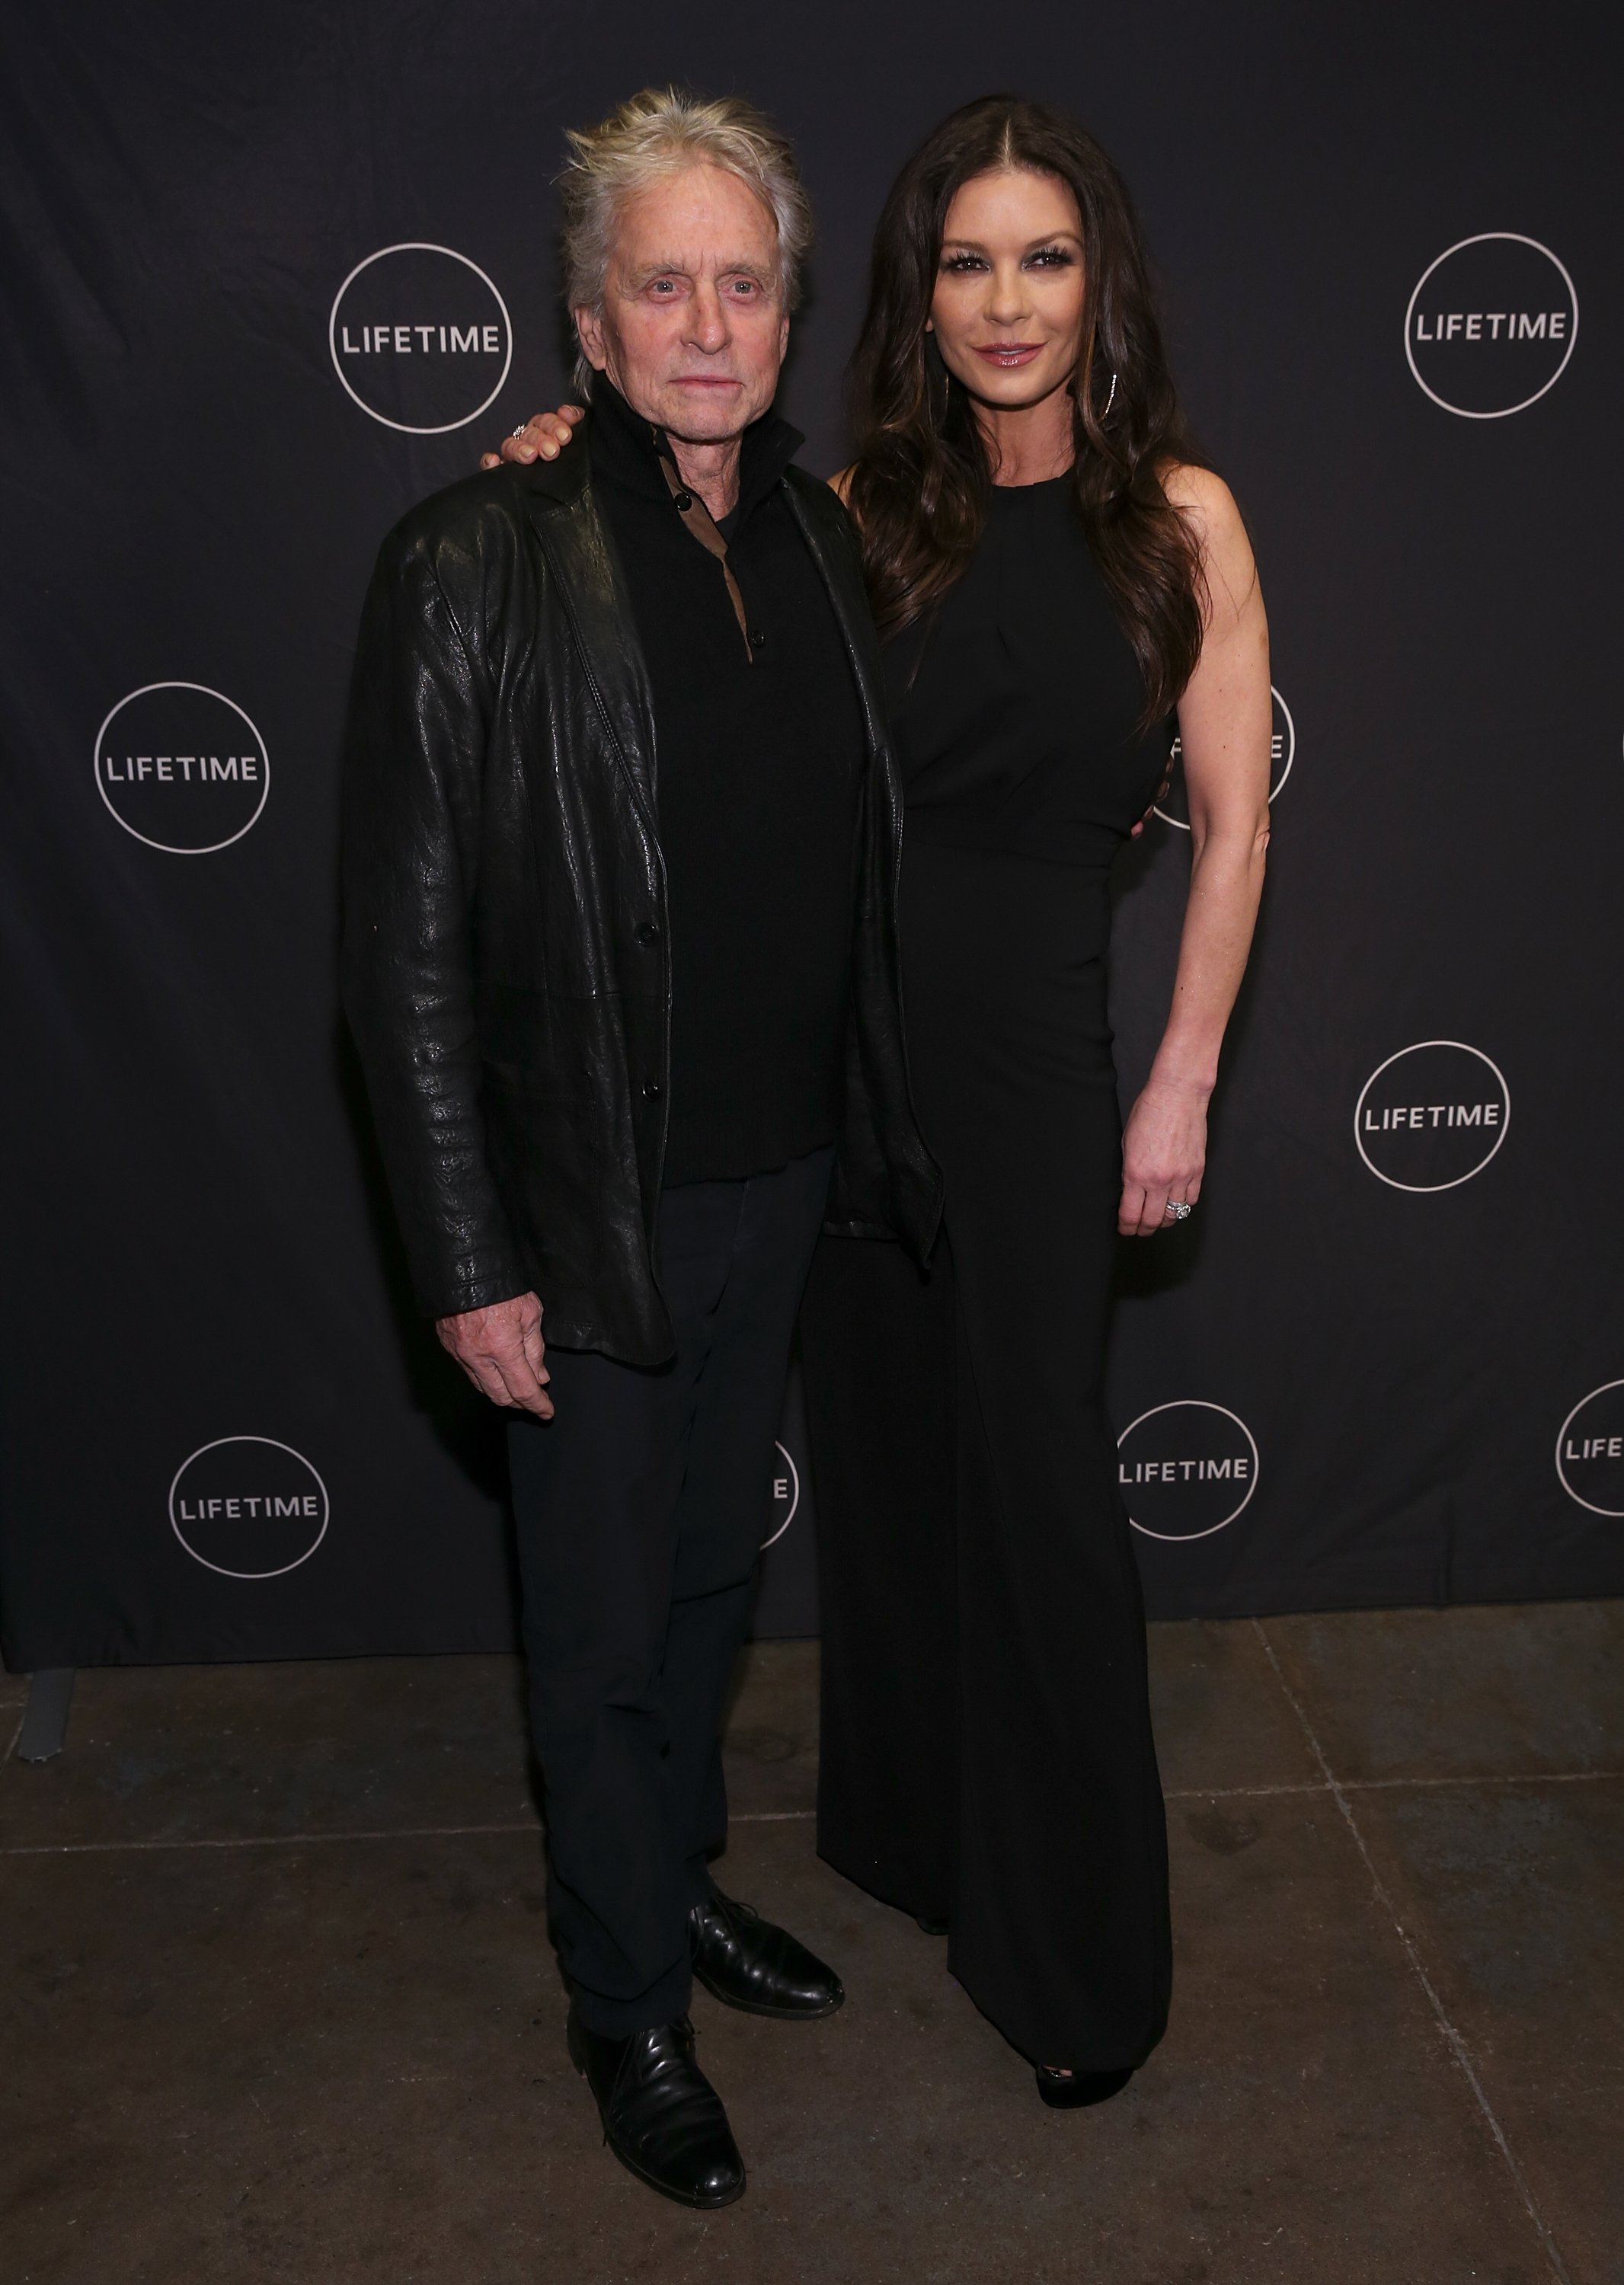 Michael Douglas and Catherine Zeta-Jones at the Lifetime Luminaries screening of 'Cocaine Godmother, The Griselda Blanco Story' at Madison Square on November 30, 2017 in New York City | Photo: Getty Images